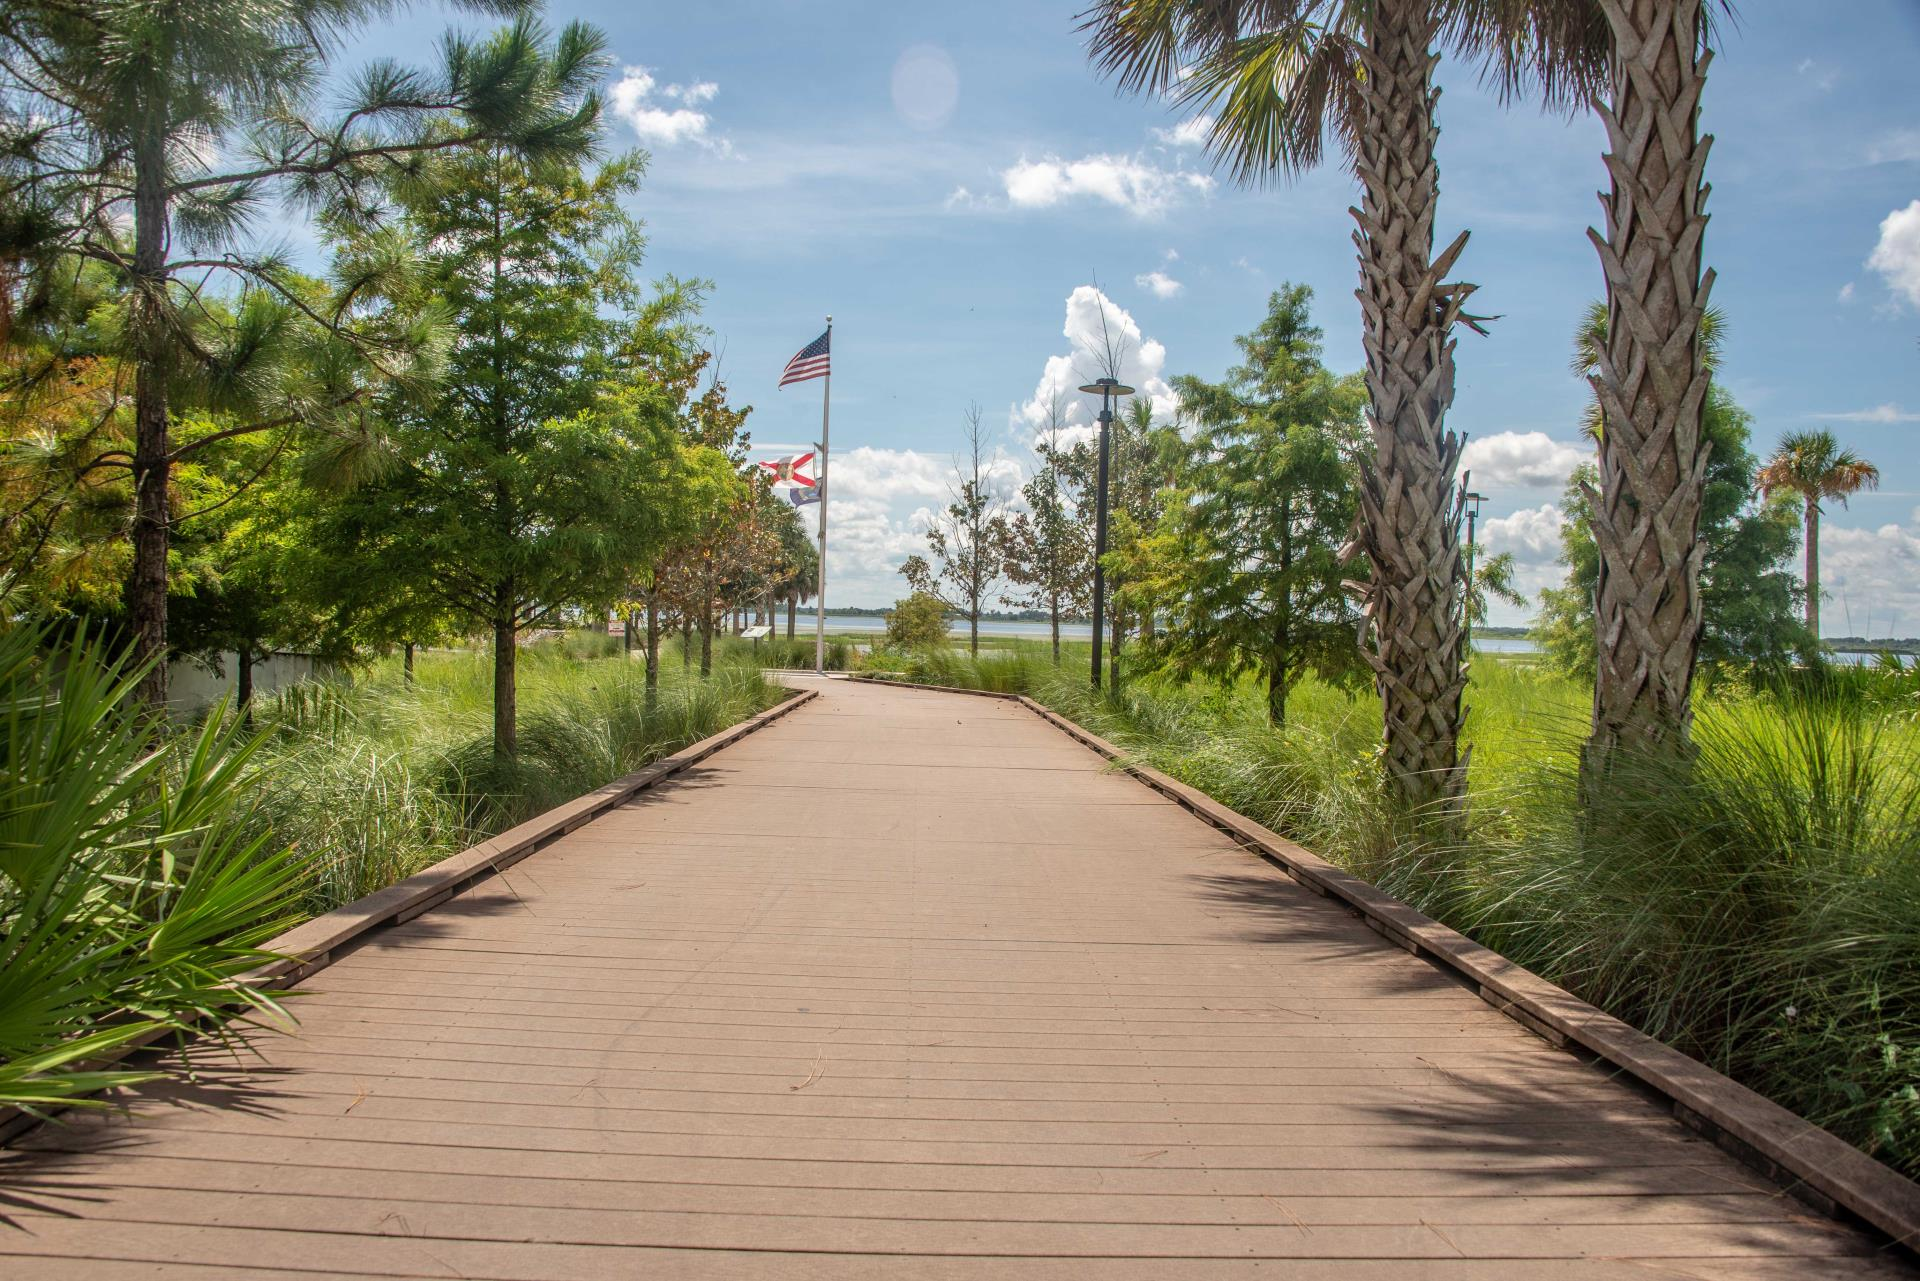 Boardwalk Rain Gardens Kissimmee Lakefront Park